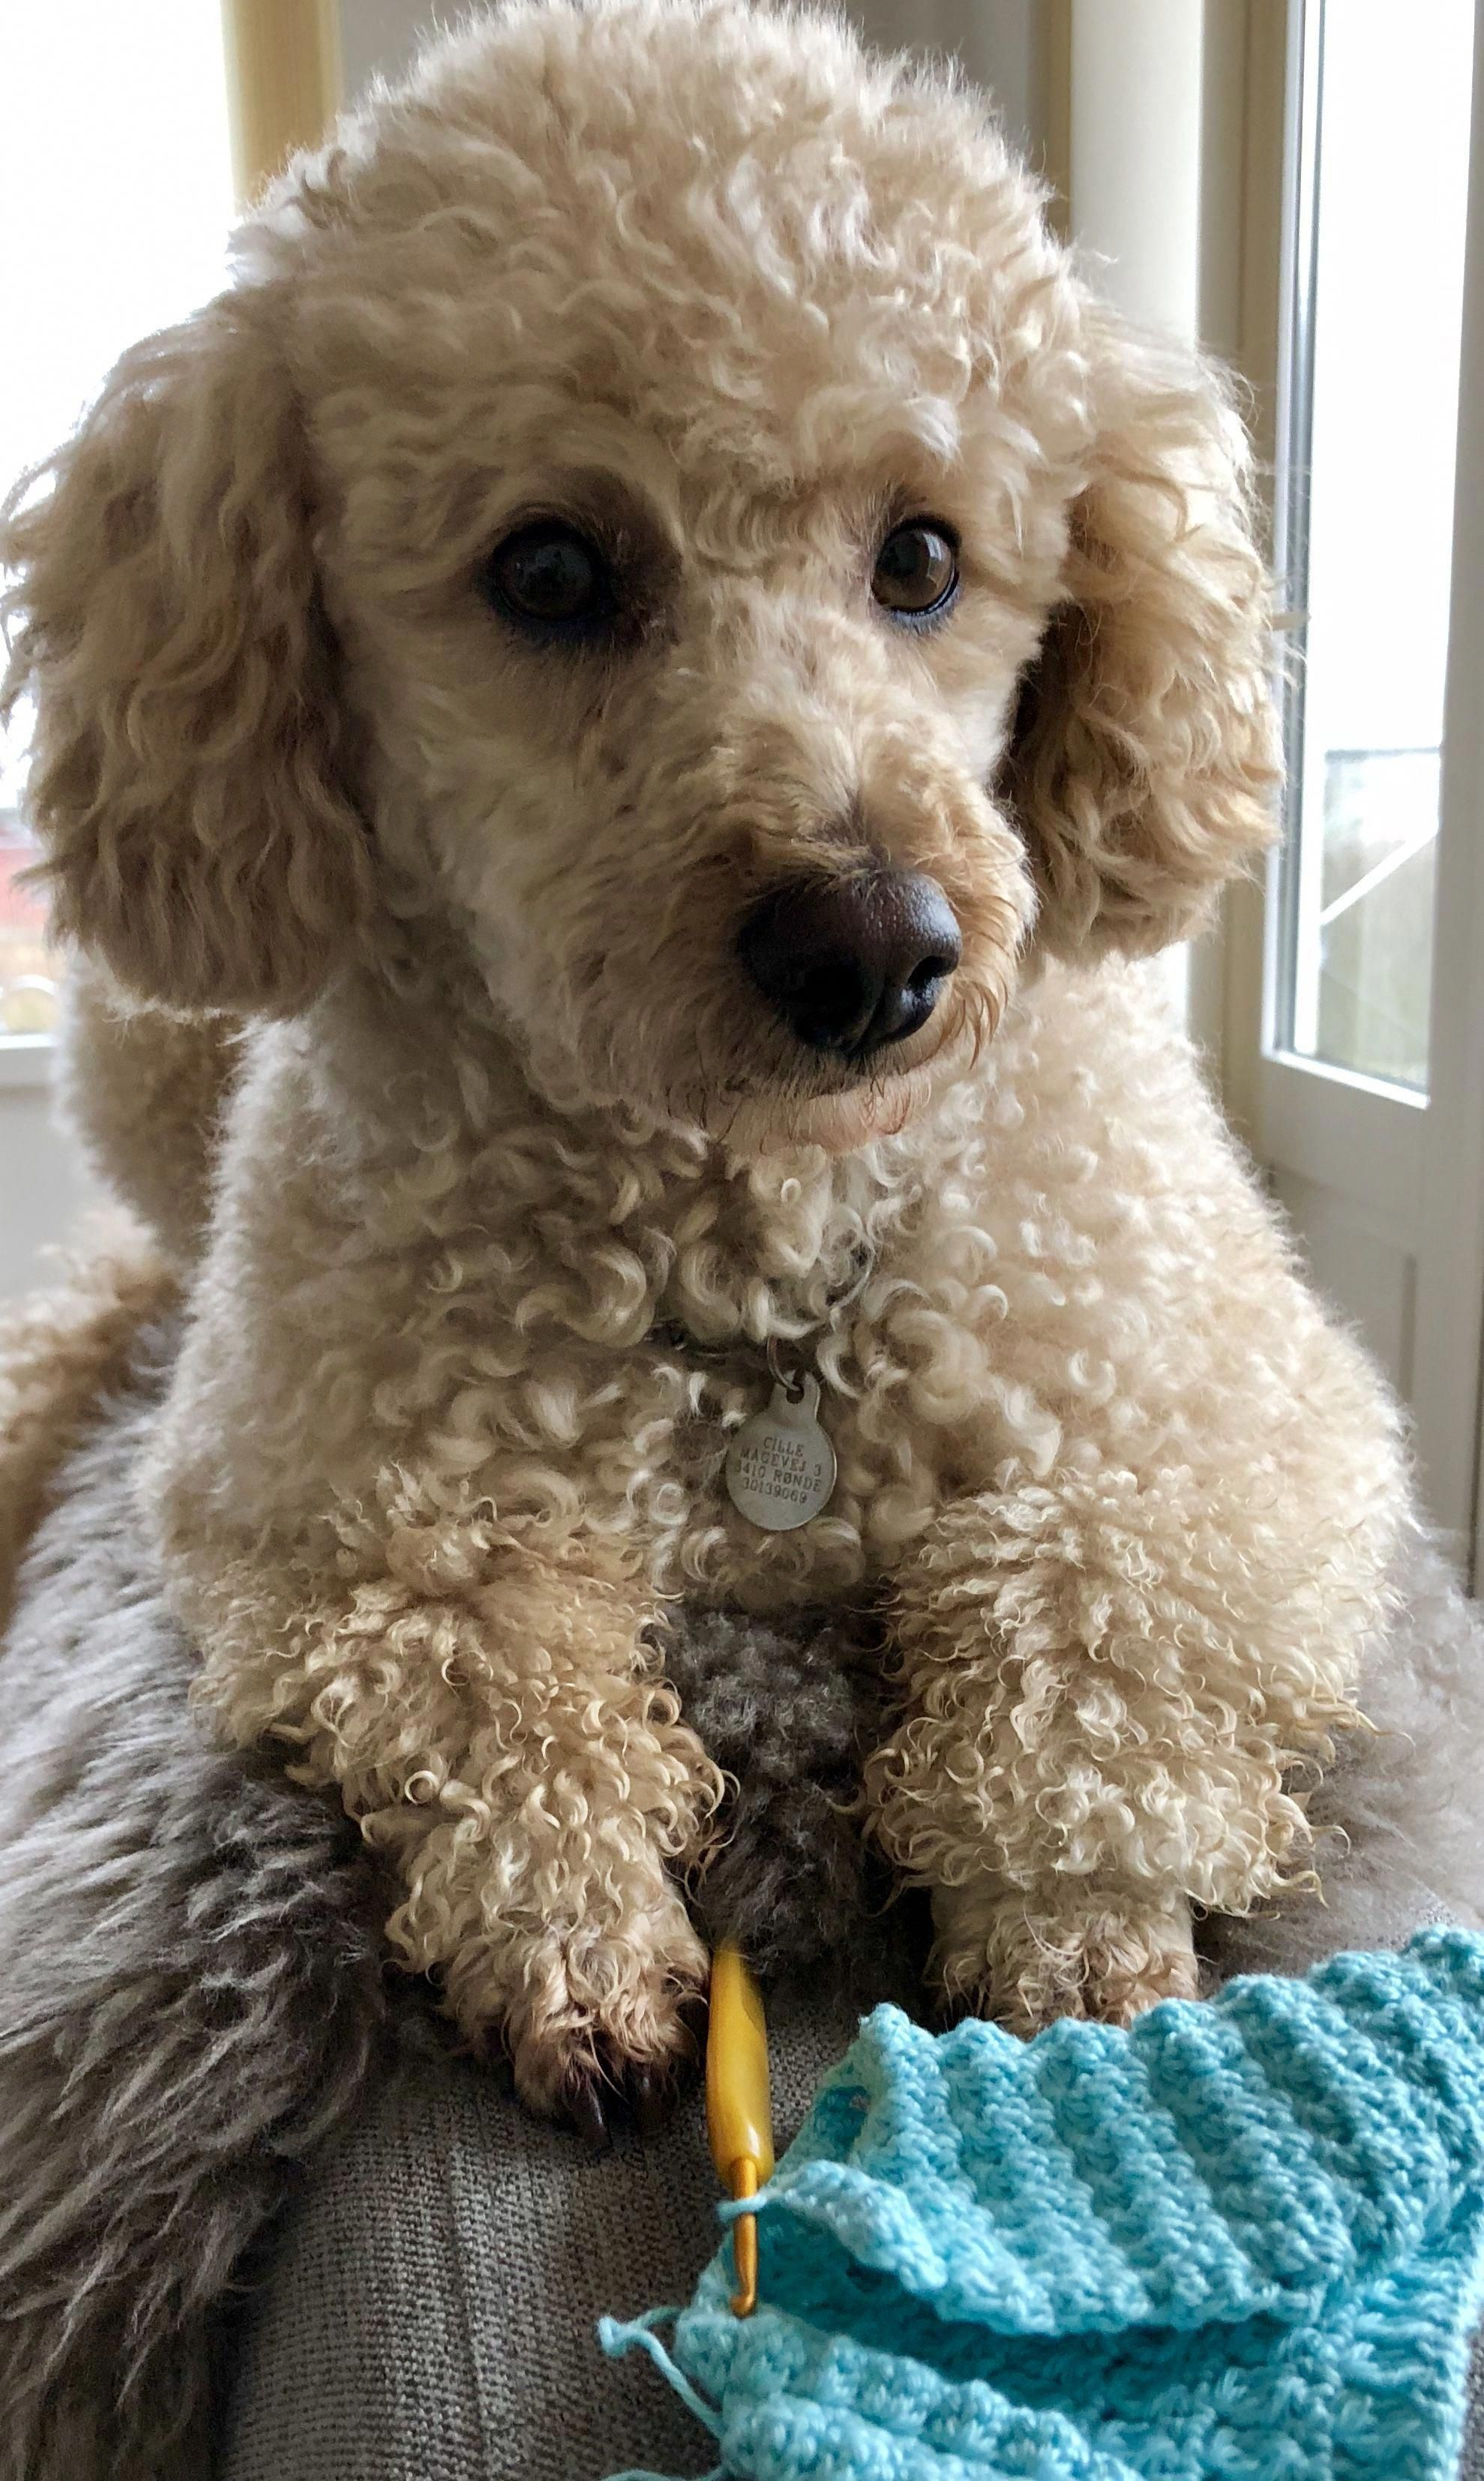 Discover The Very Smart Poodle Puppies Poodleparty Poodlepower